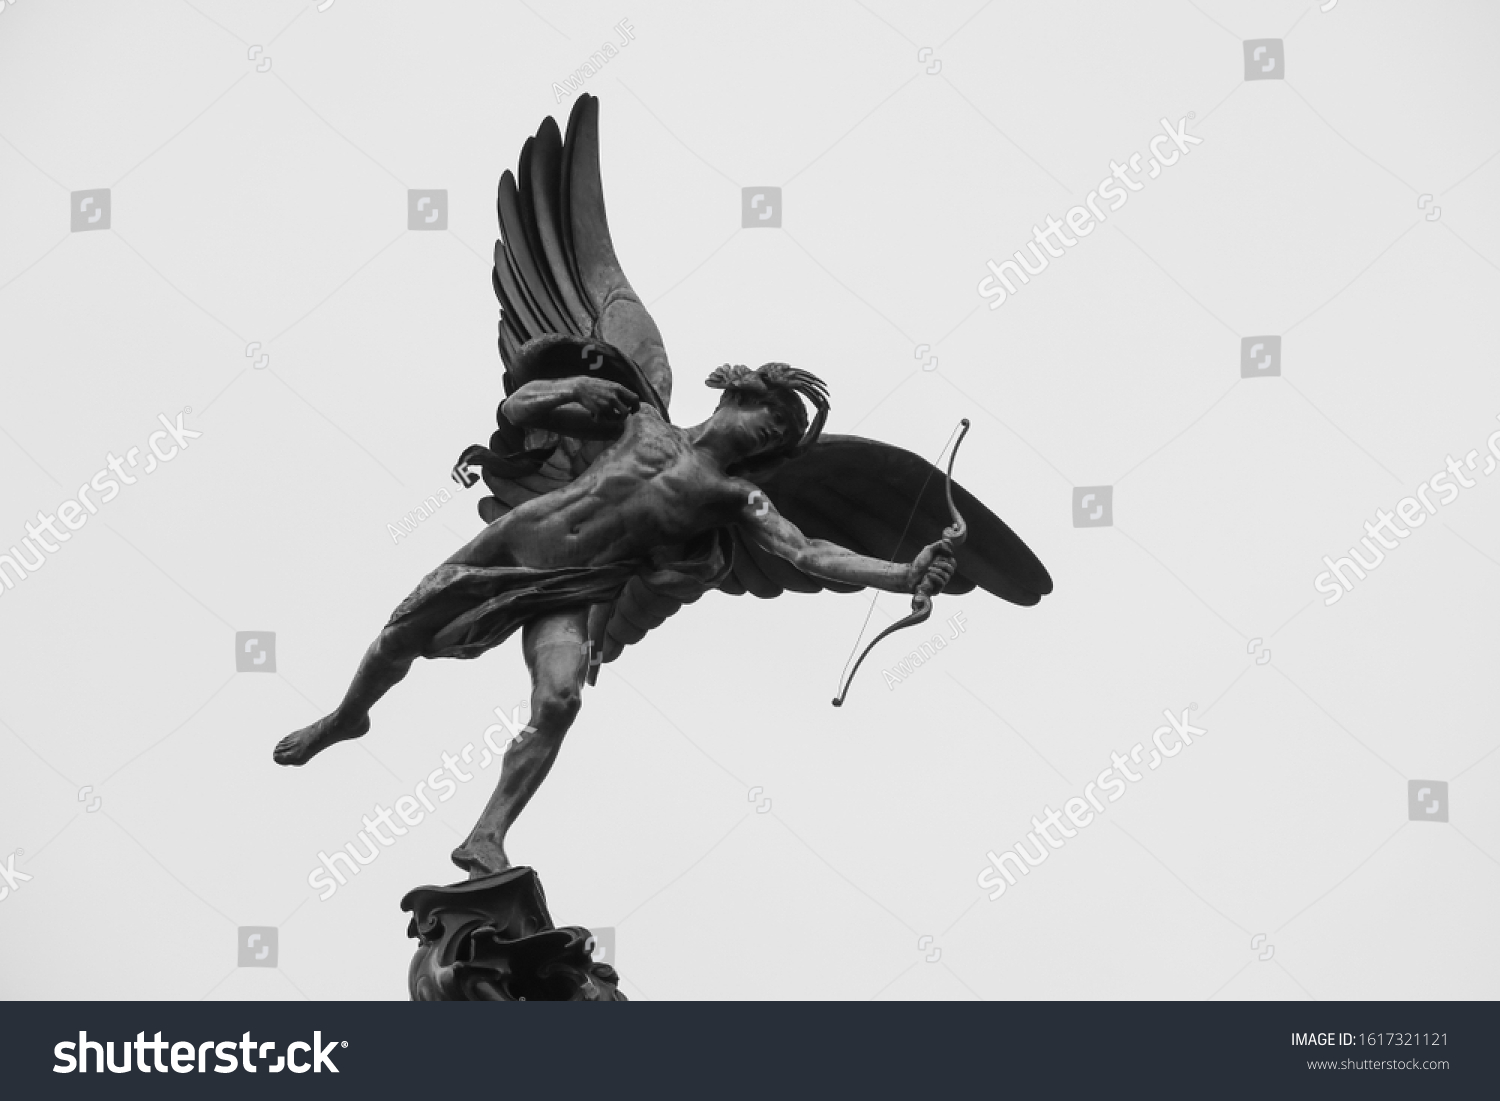 London, England - january 2020 : close up of Anteros winged statue, on the Shaftesbury Memorial Fountain located at the southeastern side of Piccadilly Circus